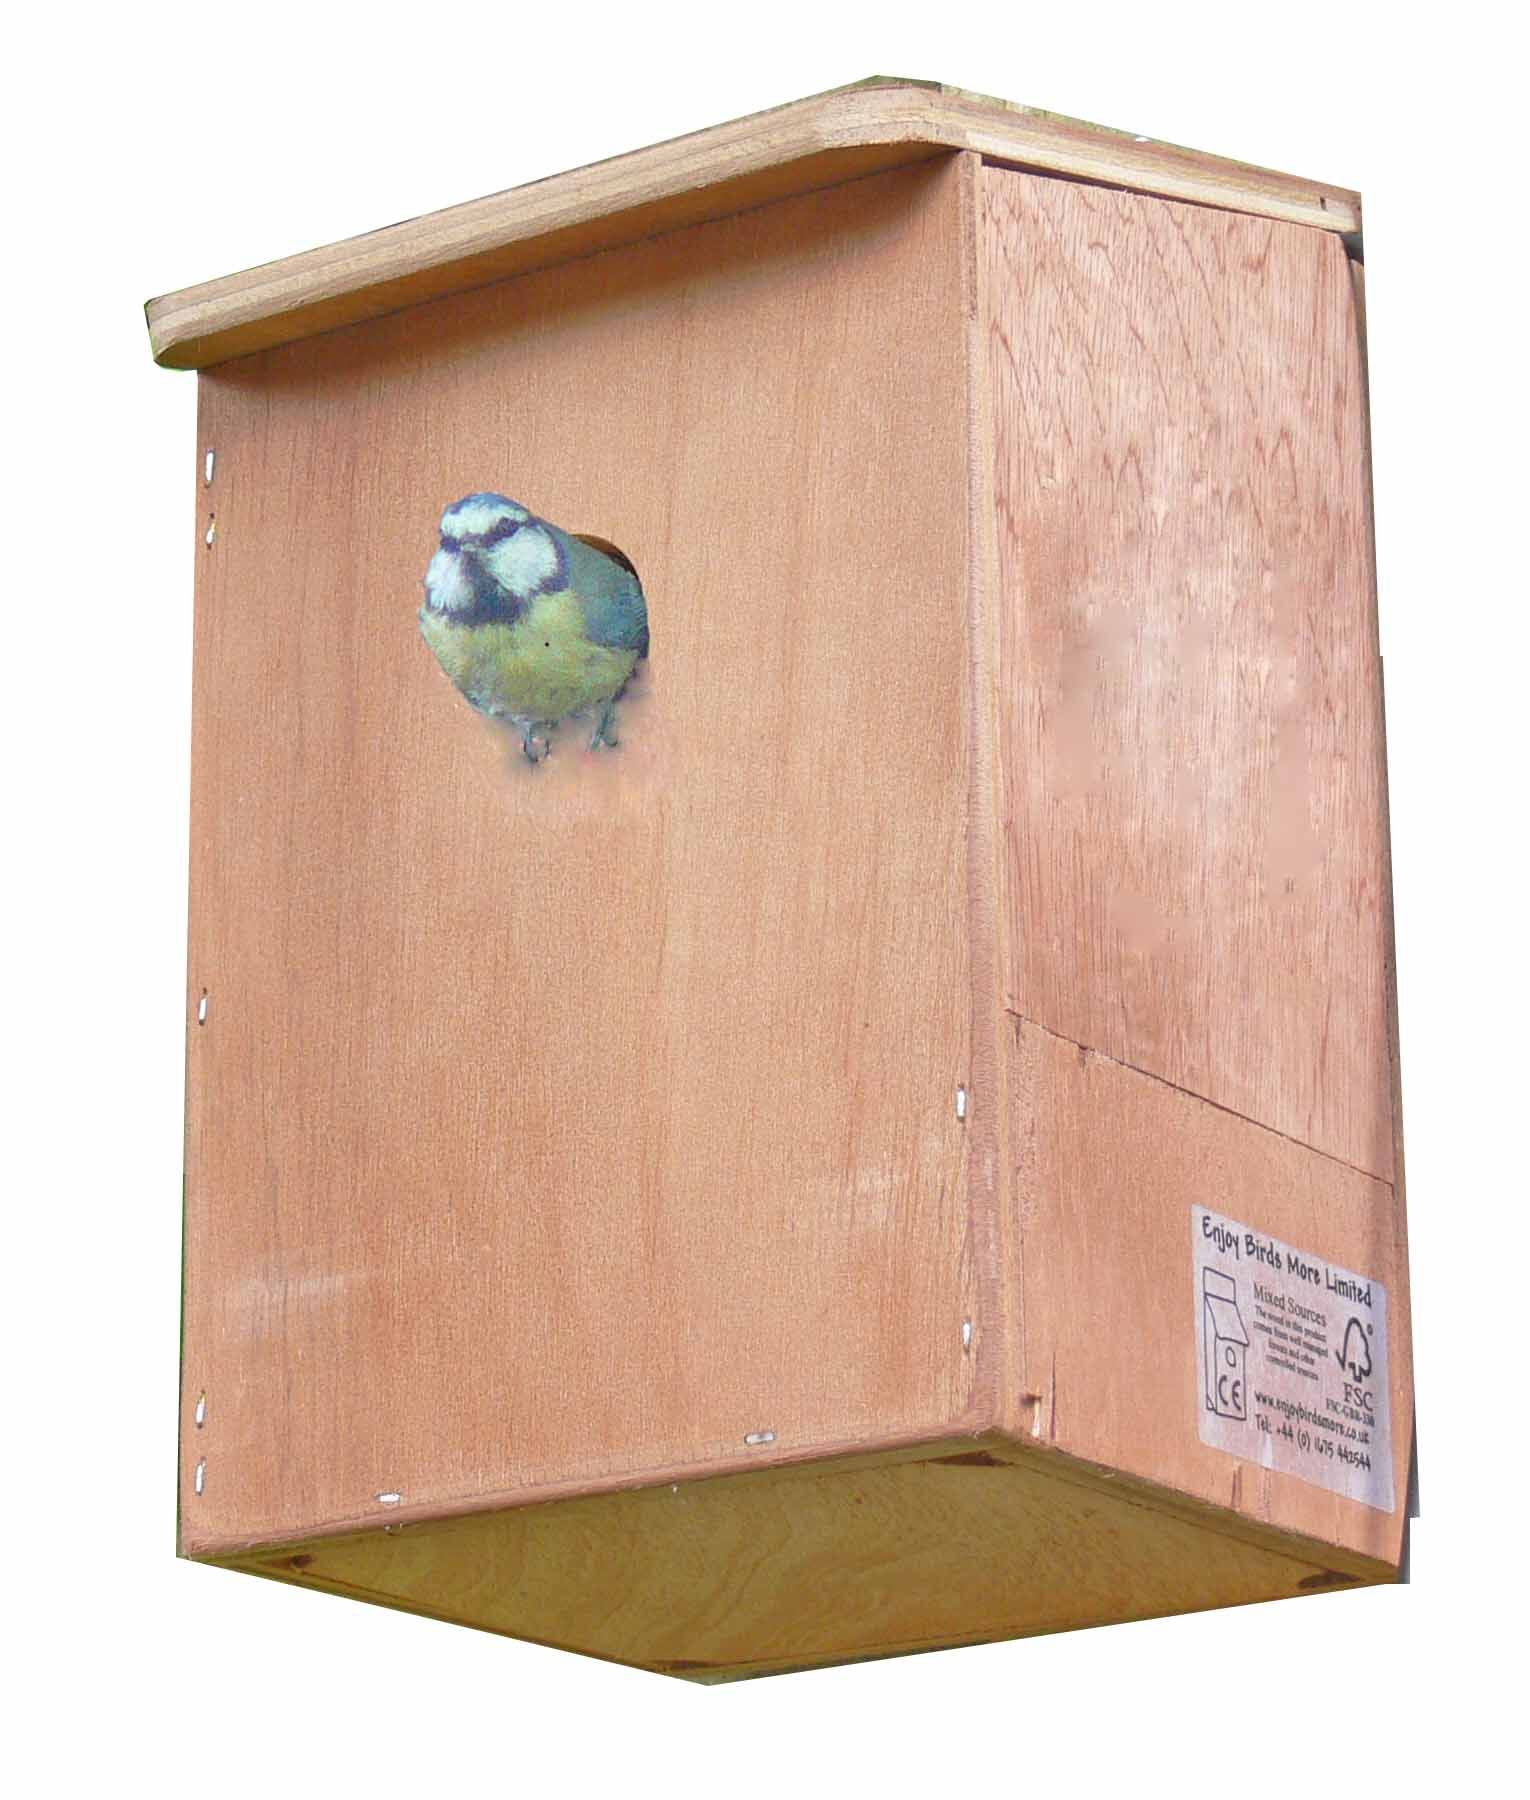 Advanced Wireless Camera Nest Box (With images) Bird box